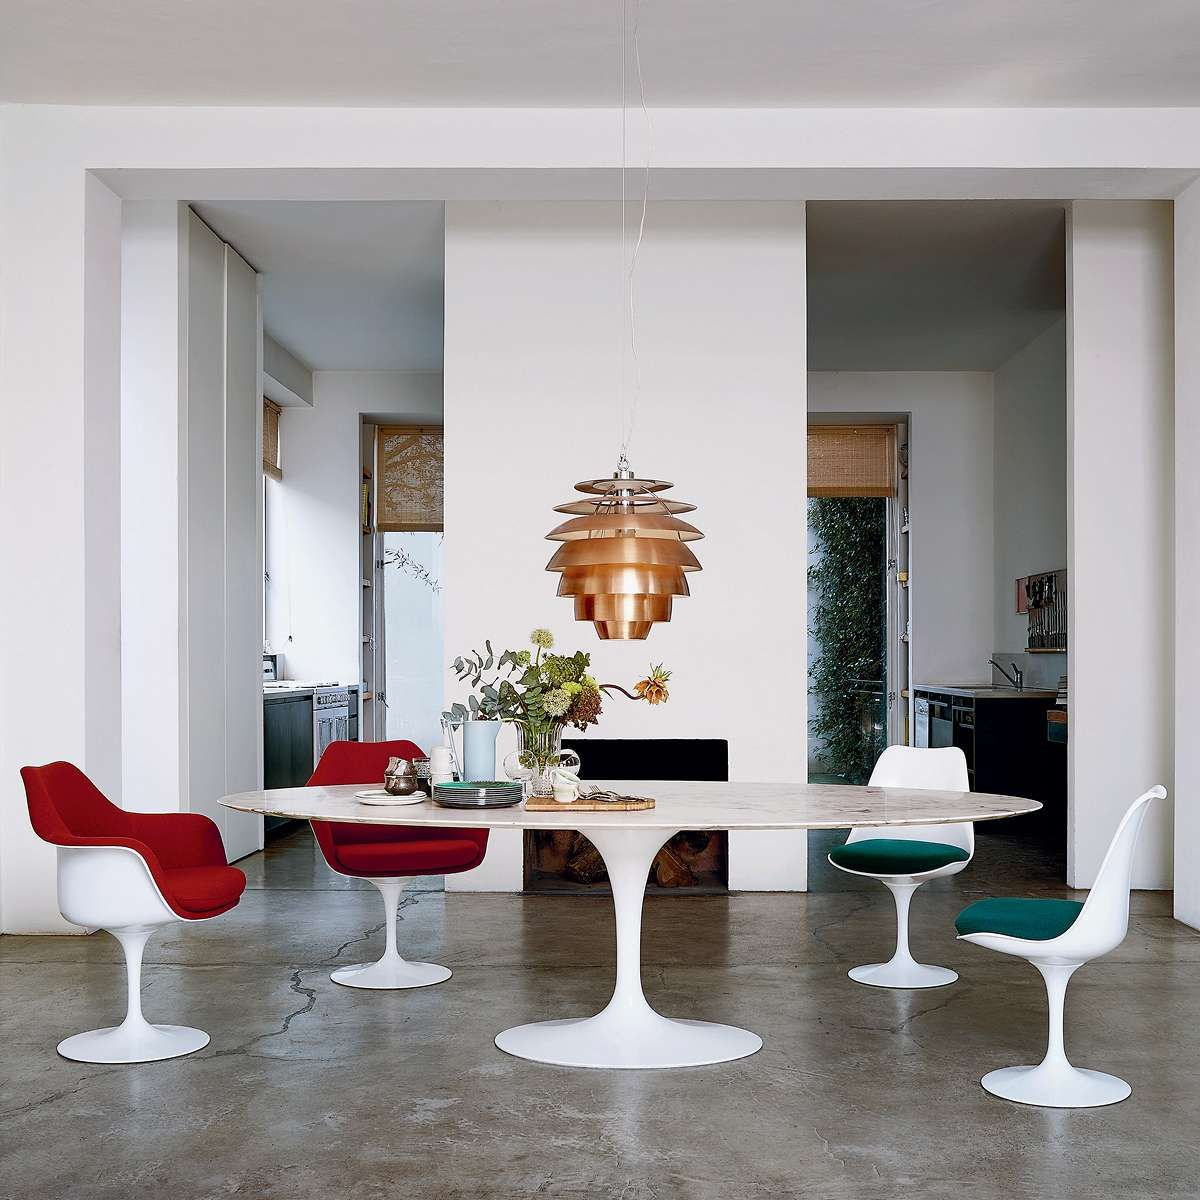 78 In Oval Saarinen Dining Table By Knoll Saarinen Oval Dining Table Saarinen Dining Table Oval Table Dining